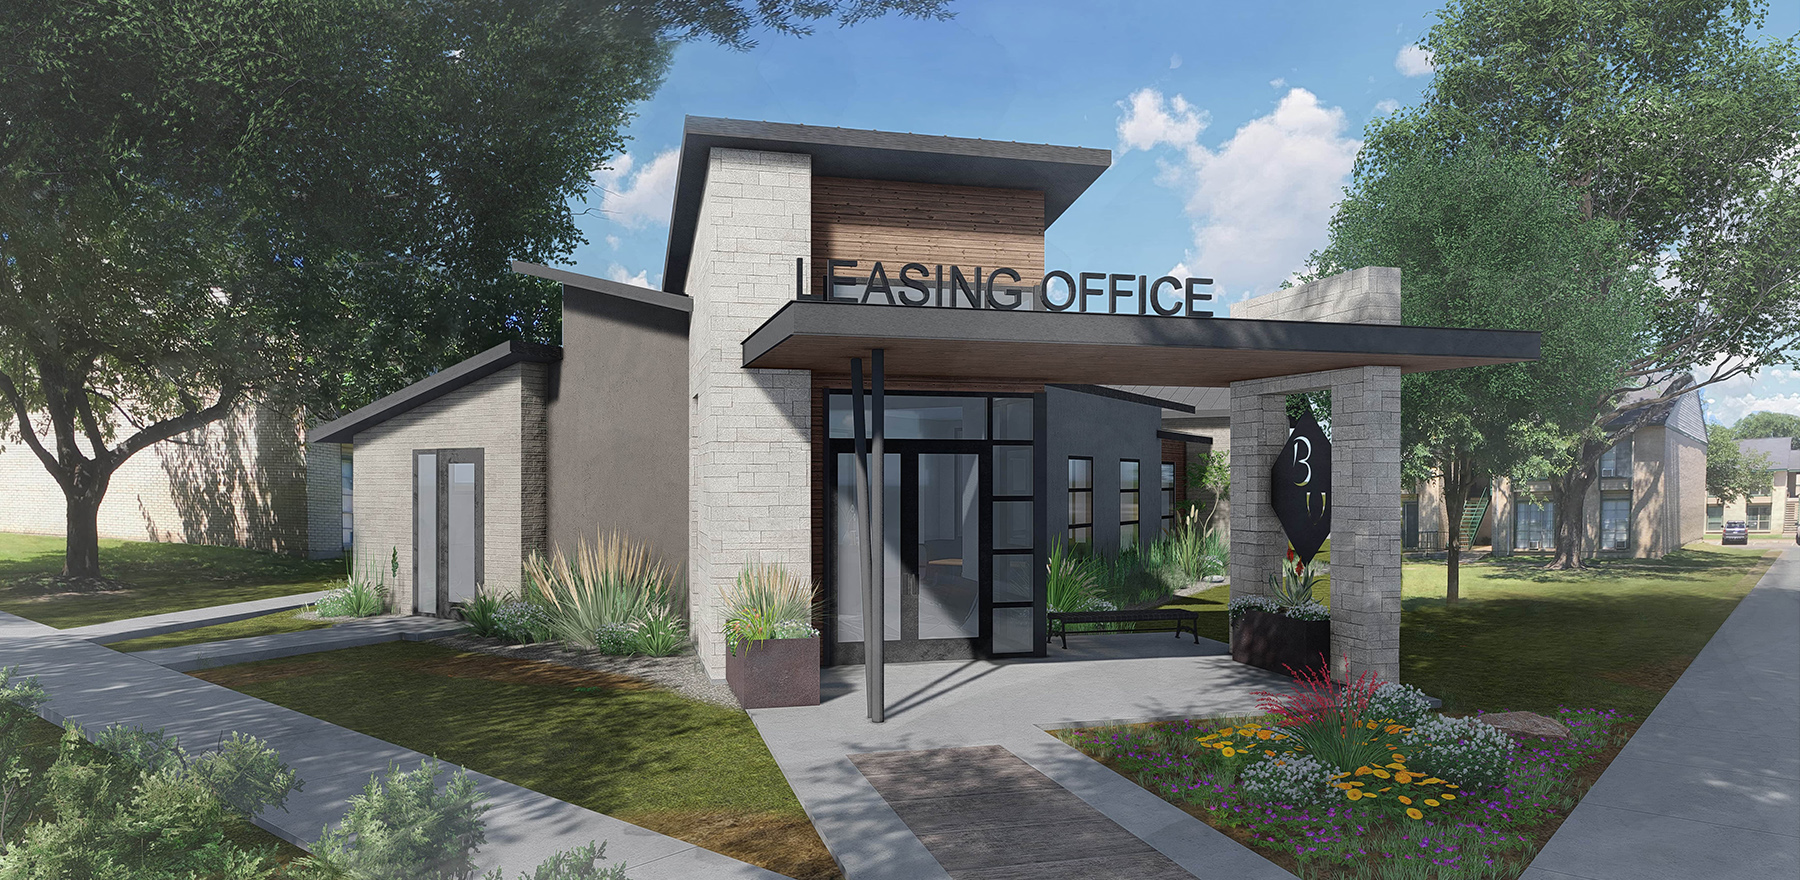 Leasing Office Rendering